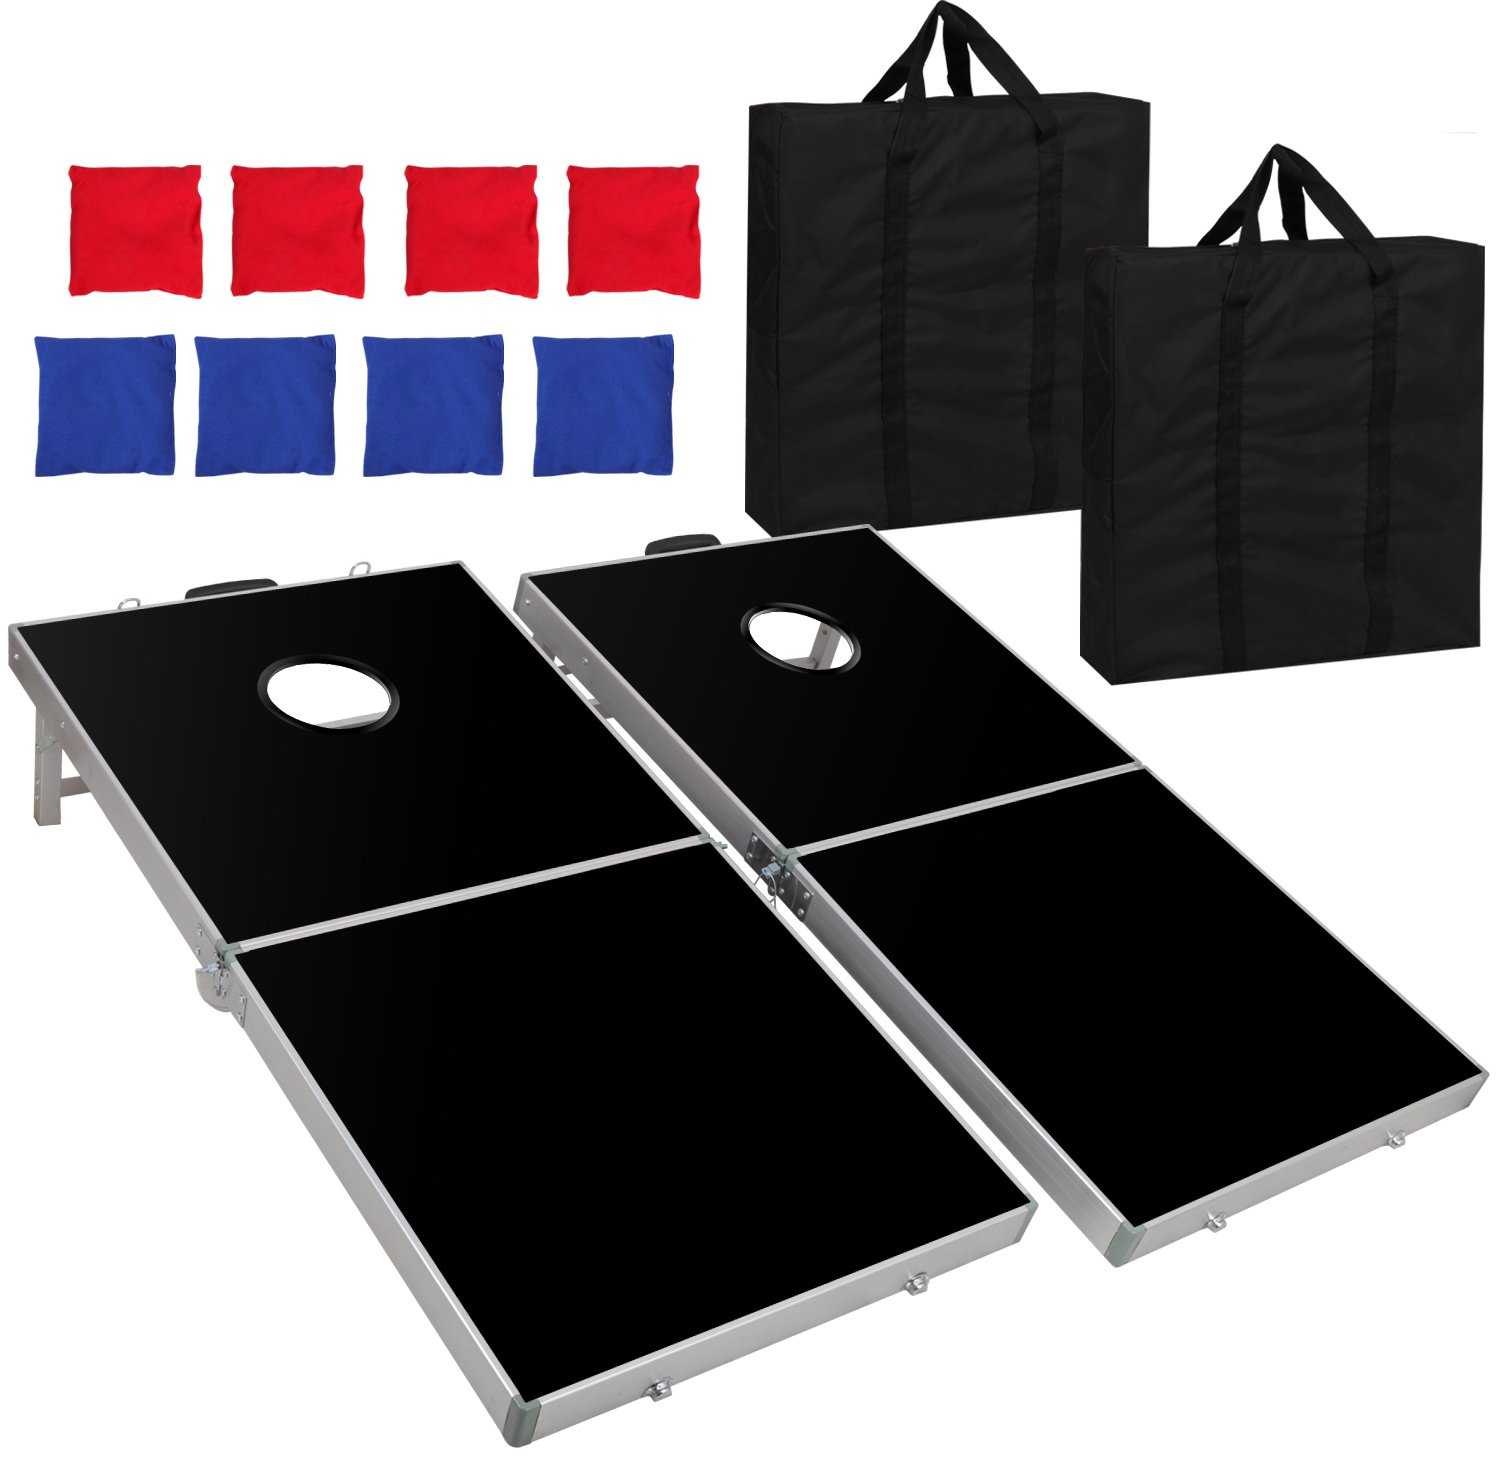 Nova Microdermabrasion Folding 4ft X 2ft Cornhole Bean Bag Toss Game Set Aluminum W/Carrying Case for Tailgate Party Backyard BBQ by Nova Microdermabrasion